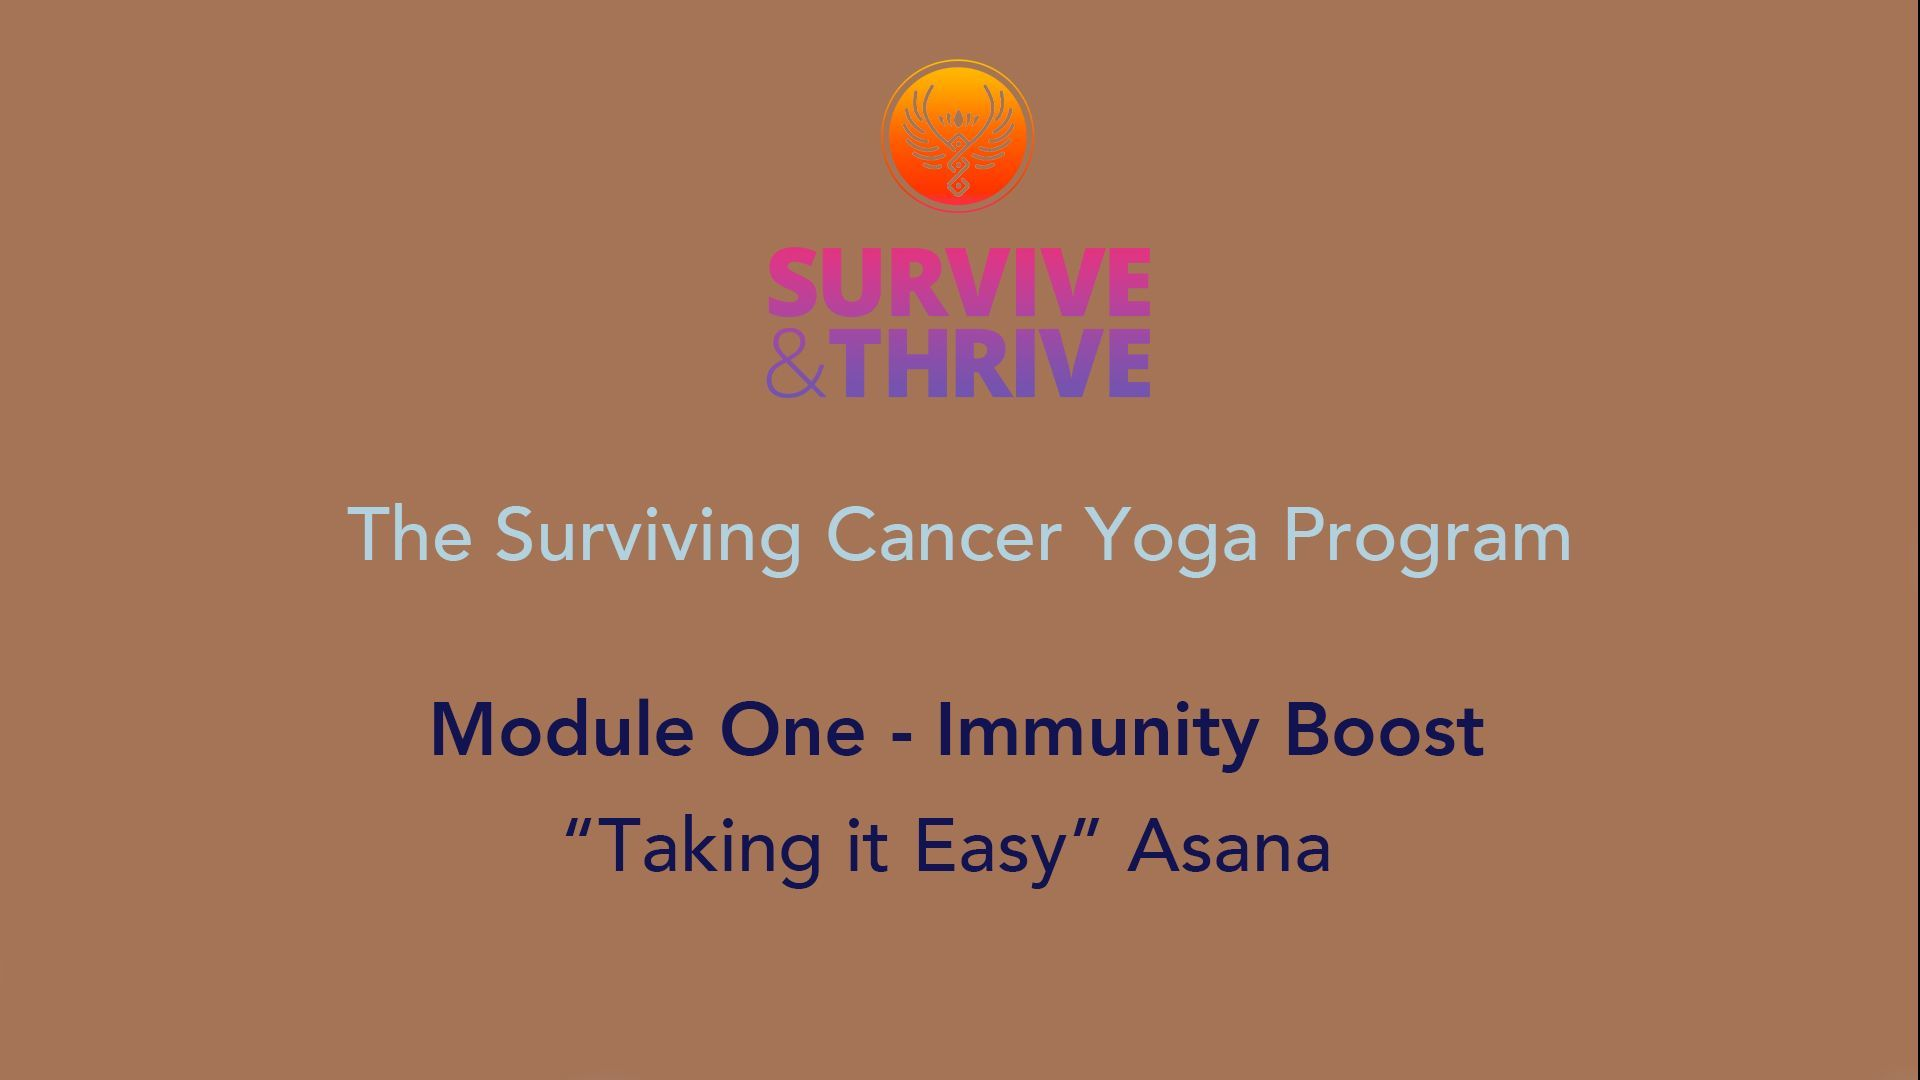 SURVIVE AND THRIVE | MODULE 1 - IMMUNITY BOOST | TAKING IT EASY ASANA